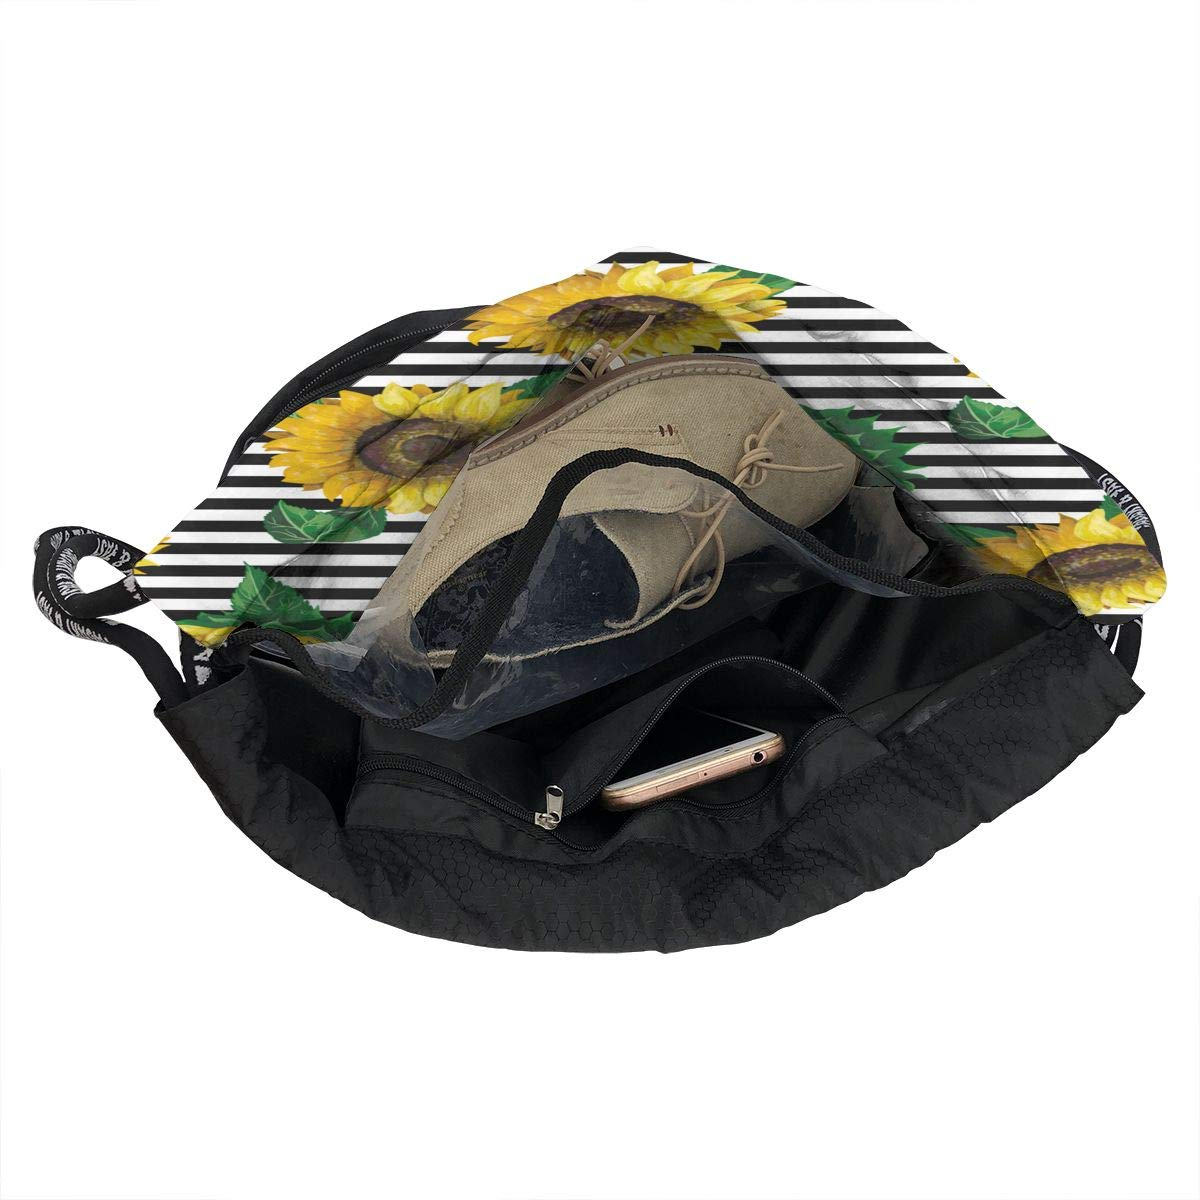 Sunflowers On A Ribbon Beam Mouth Drawstring Backpack Waterproof Shoulder Strap Leisure Backpack Portable Gym Bag